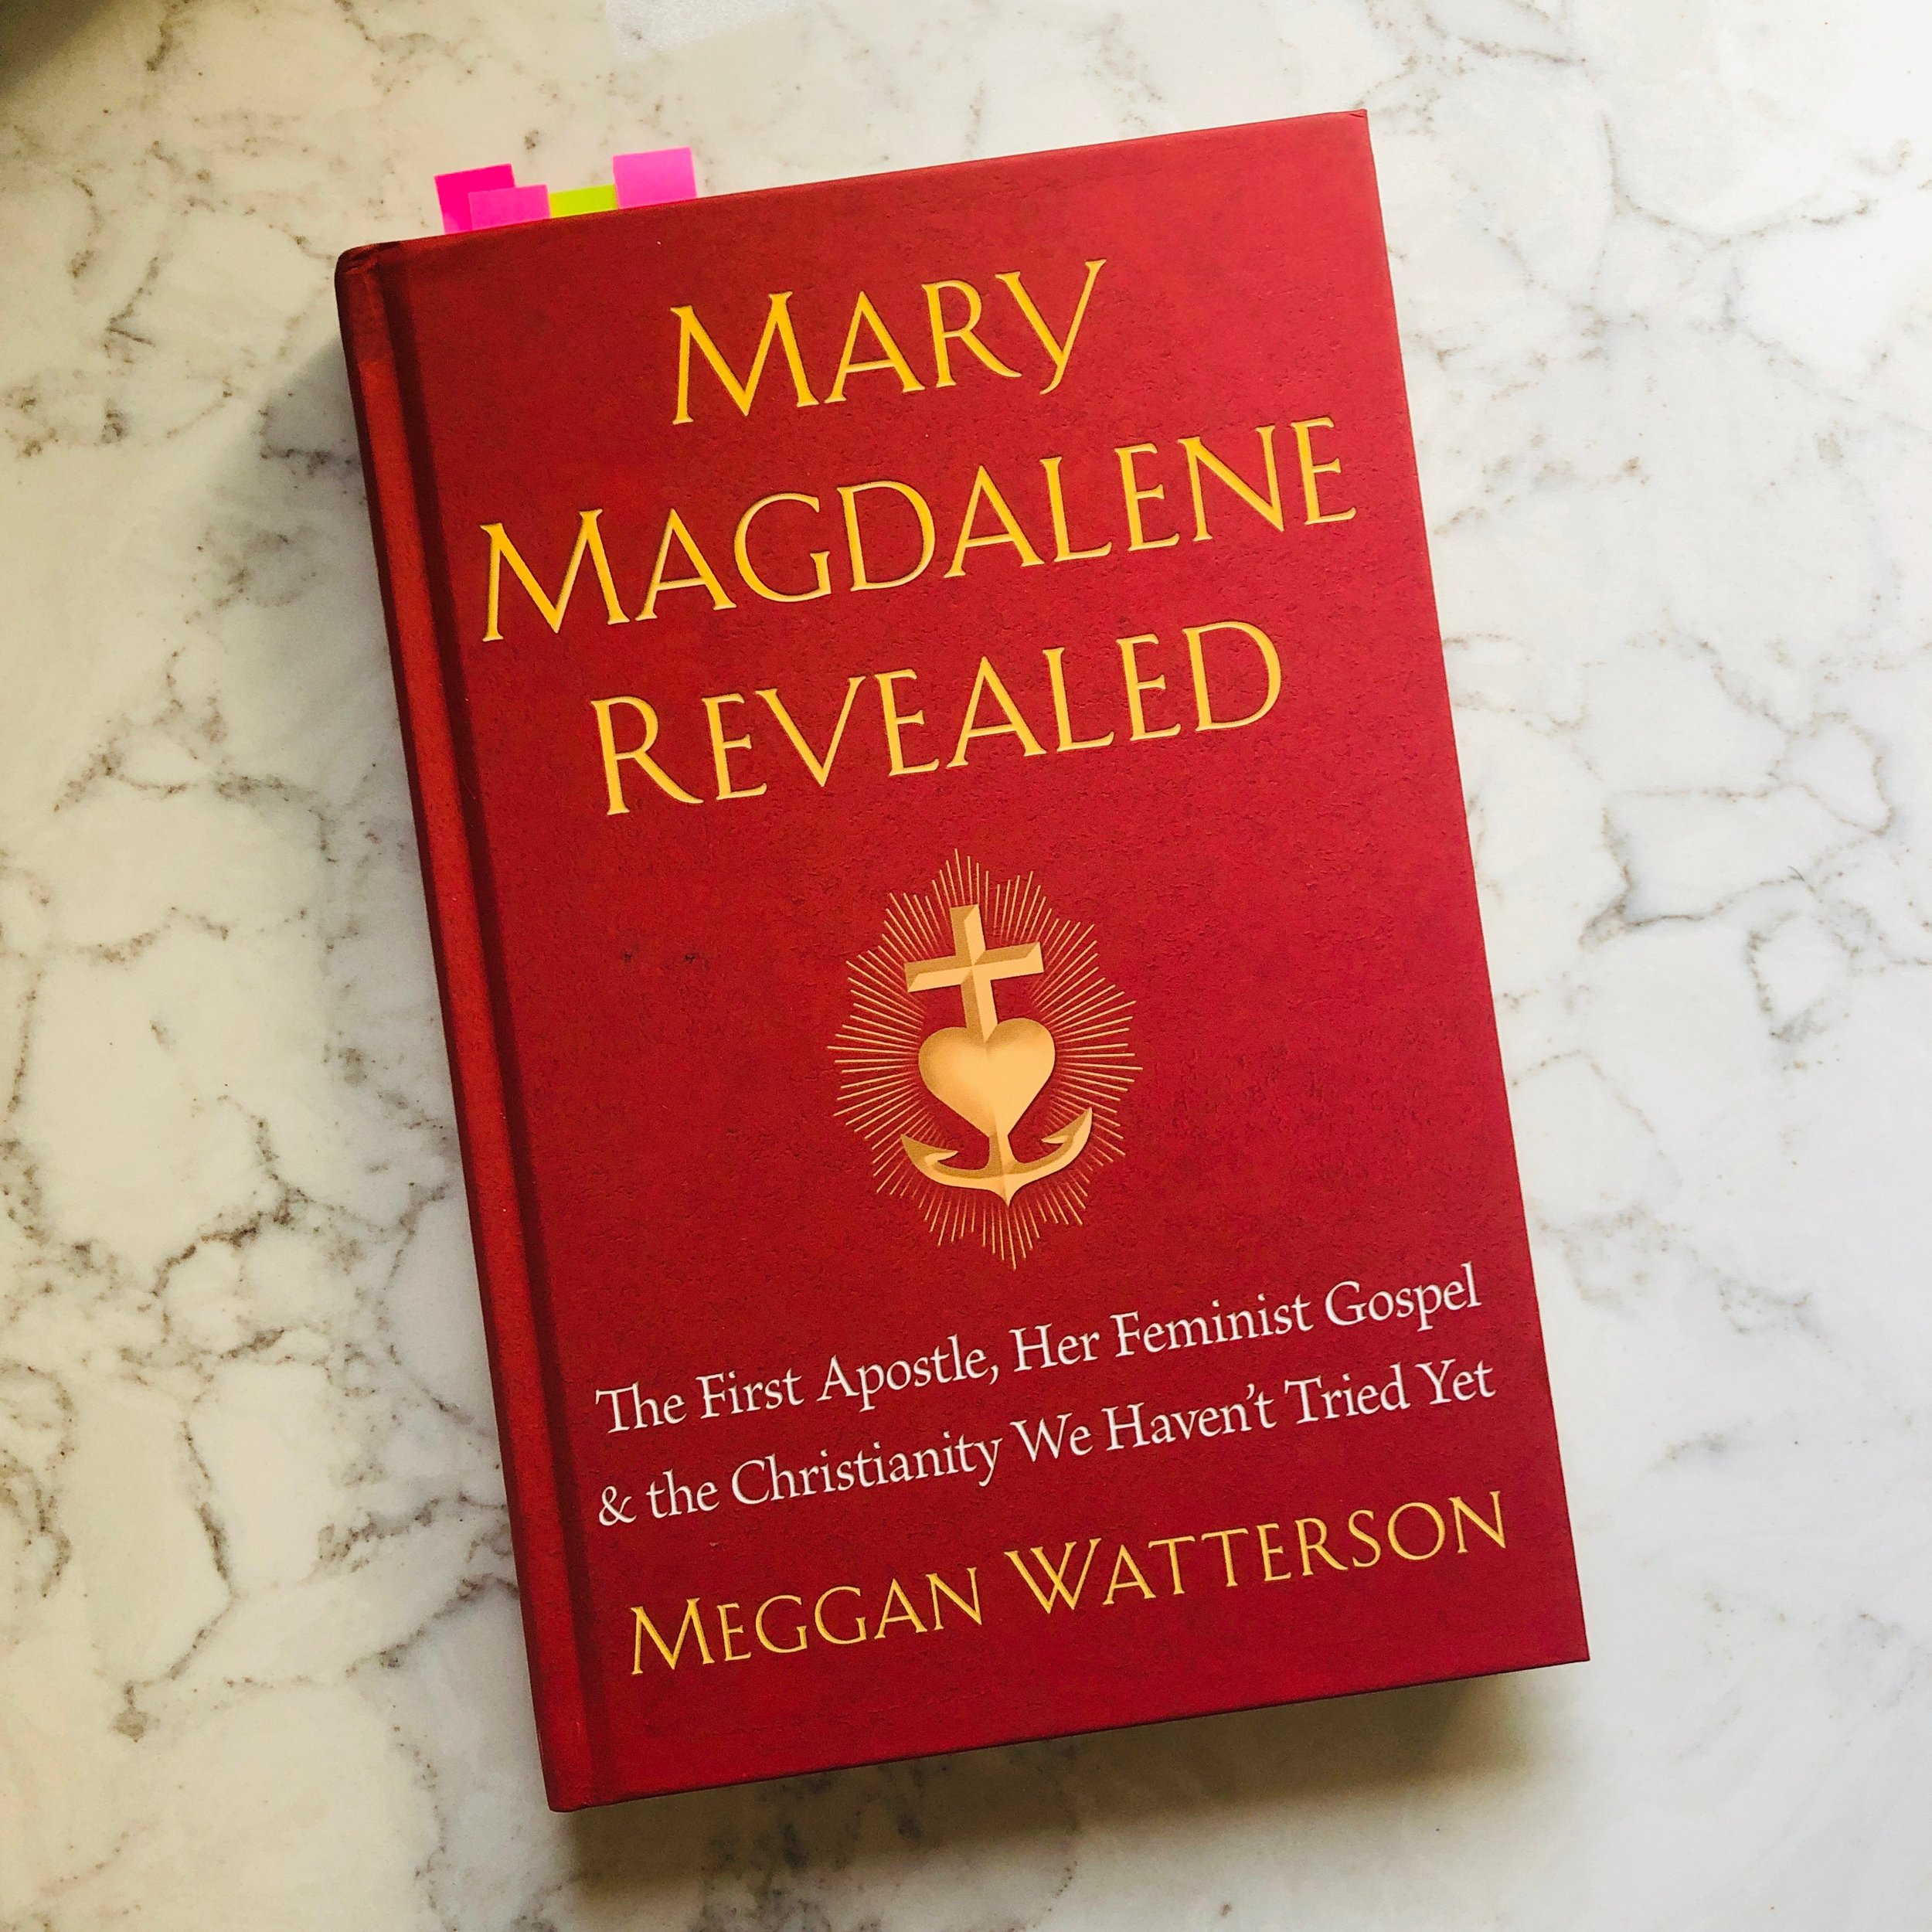 """Written by Harvard Theologian and former Minister, Meggan Watterson. Think of this as a theological memoir. Analysis + Meggan's story. Praised by Glennon Doyle as a """"masterpiece."""""""